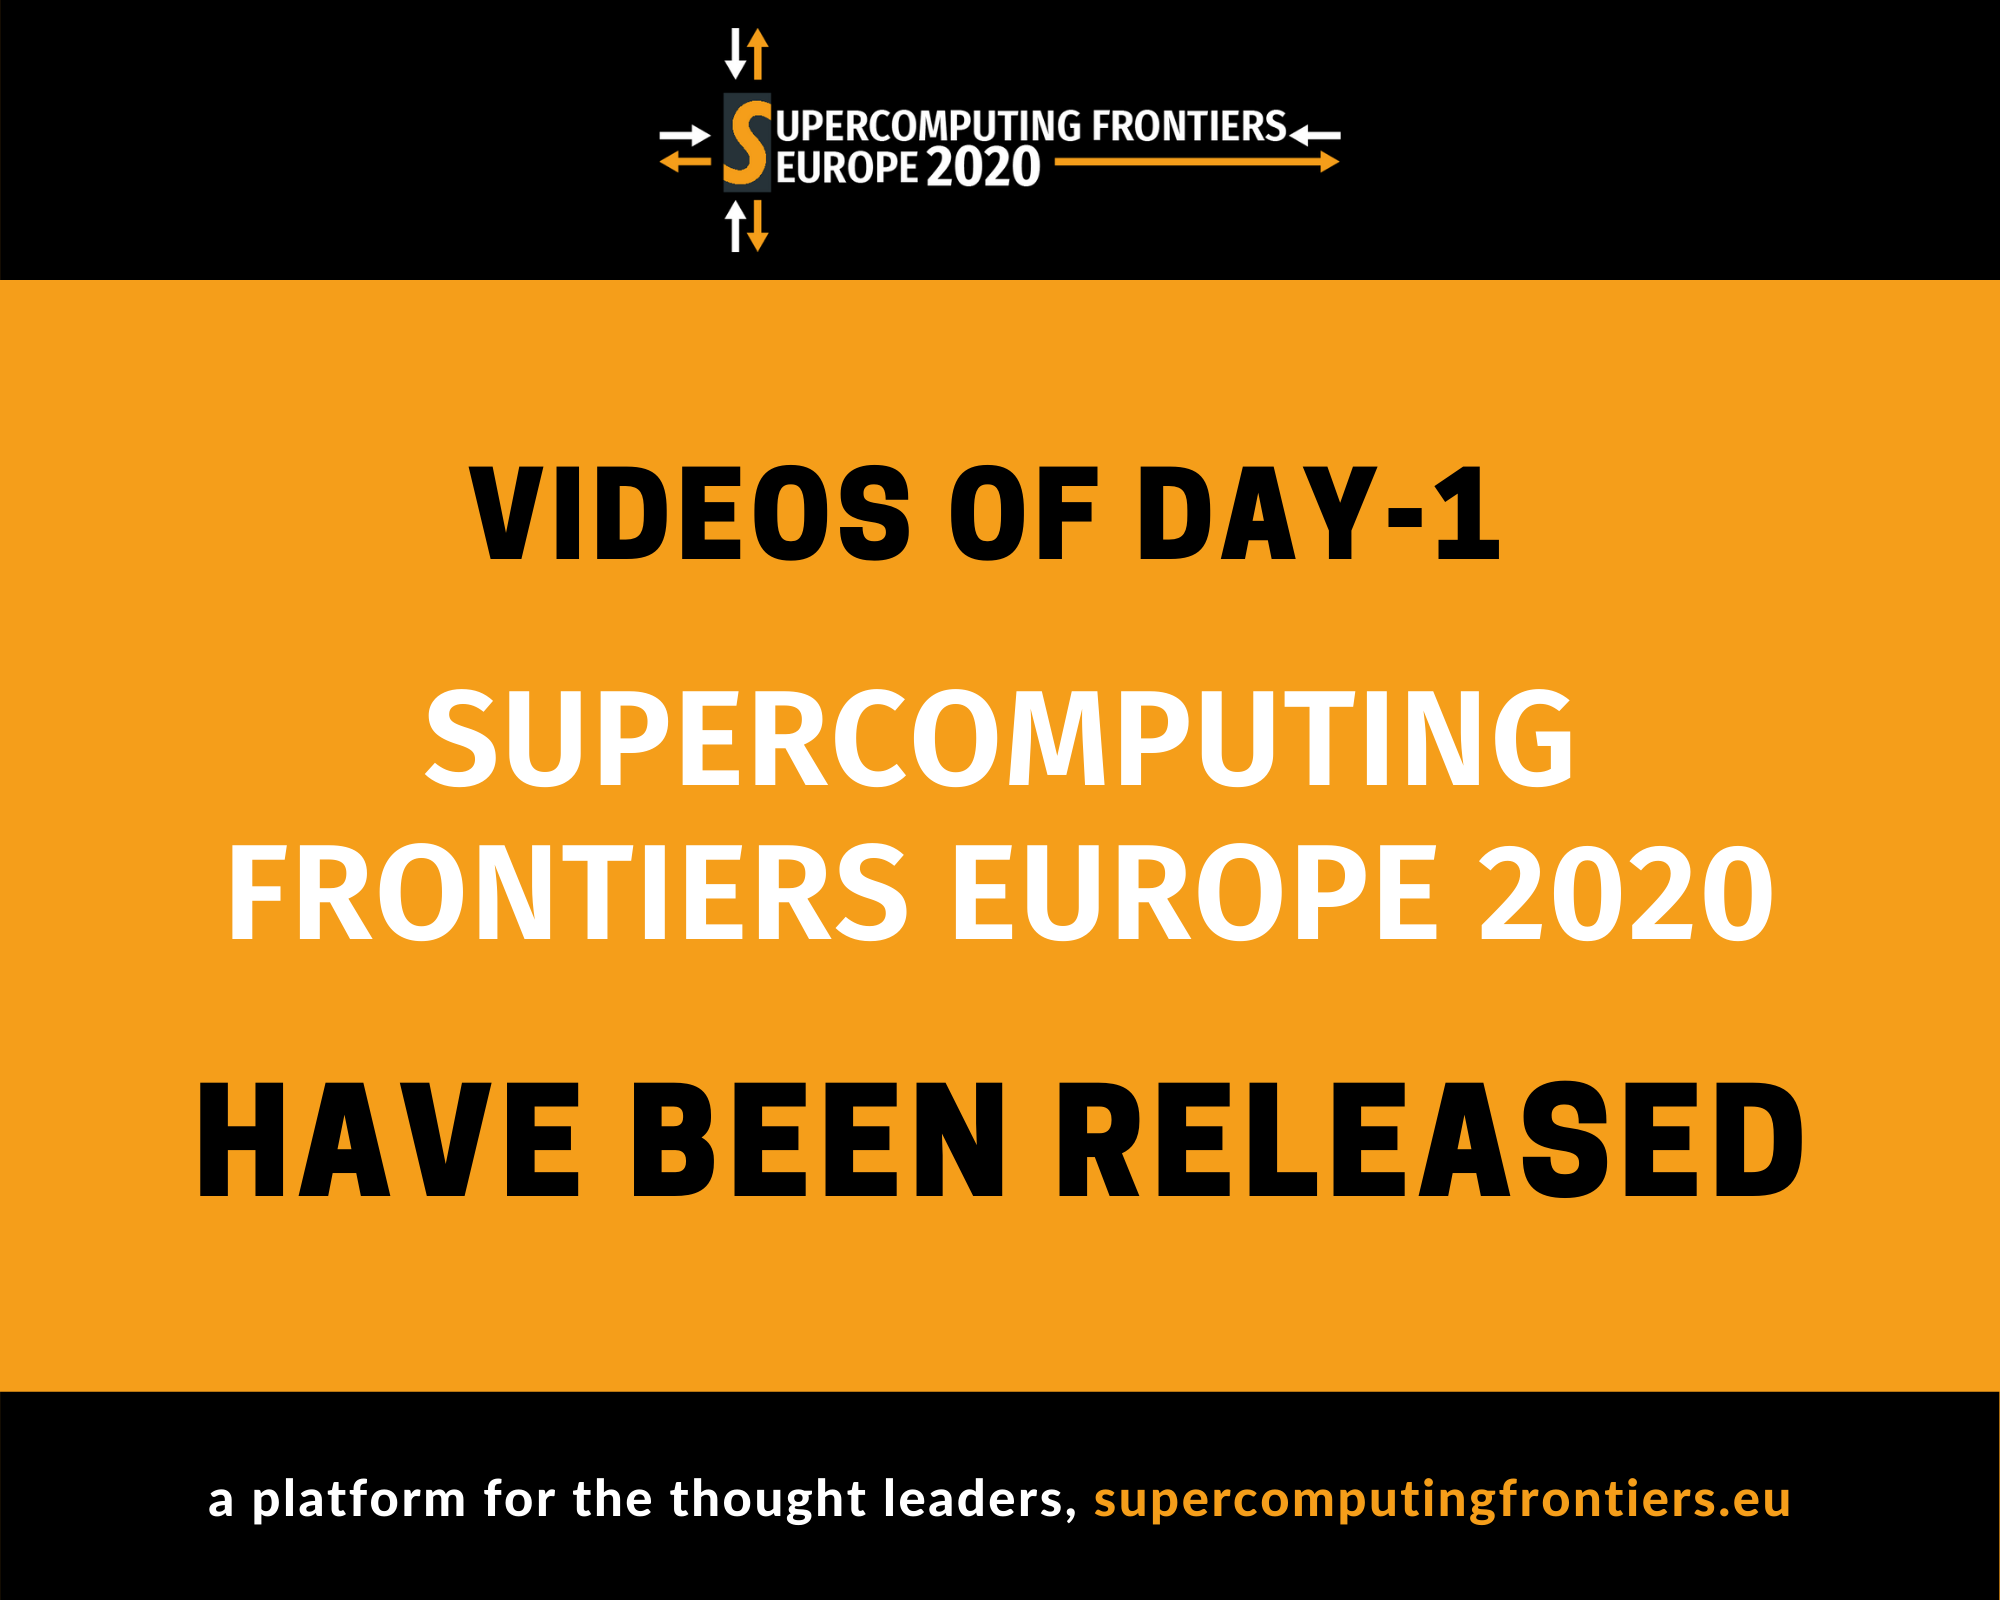 Videos of Supercomputing Frontiers Europe 2020: Day-1 have been released